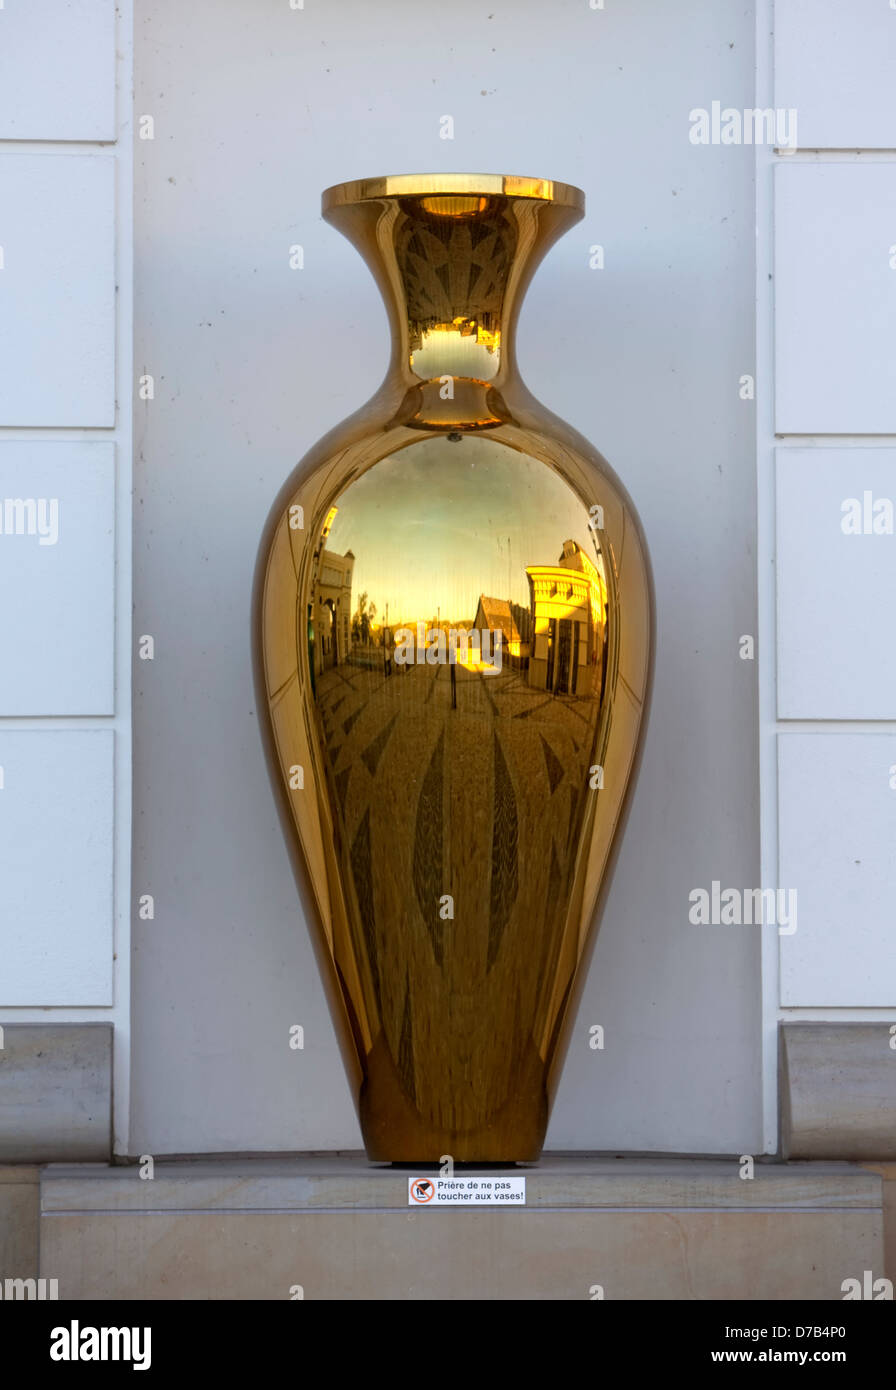 Goldene Vase Reflected In A Golden Vase, The Courthouses Of Cite